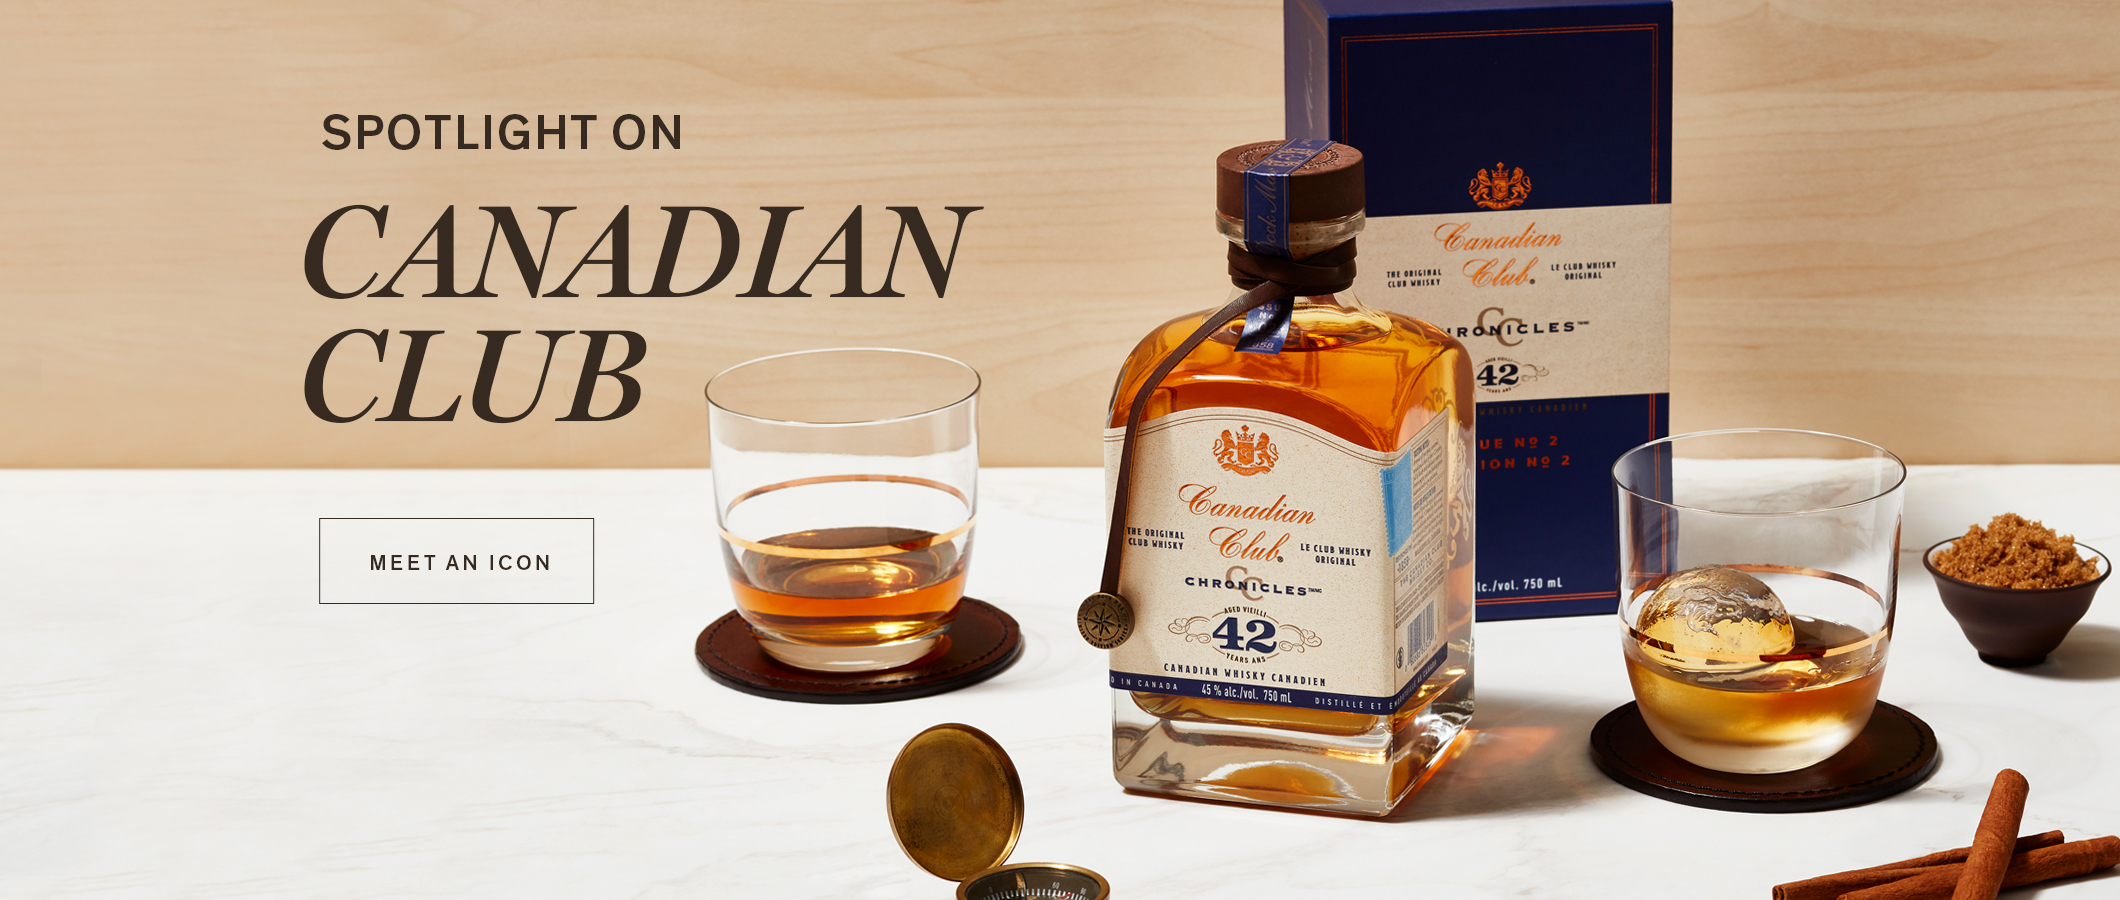 Spotlight On Canadian Club,  MEET AN ICON